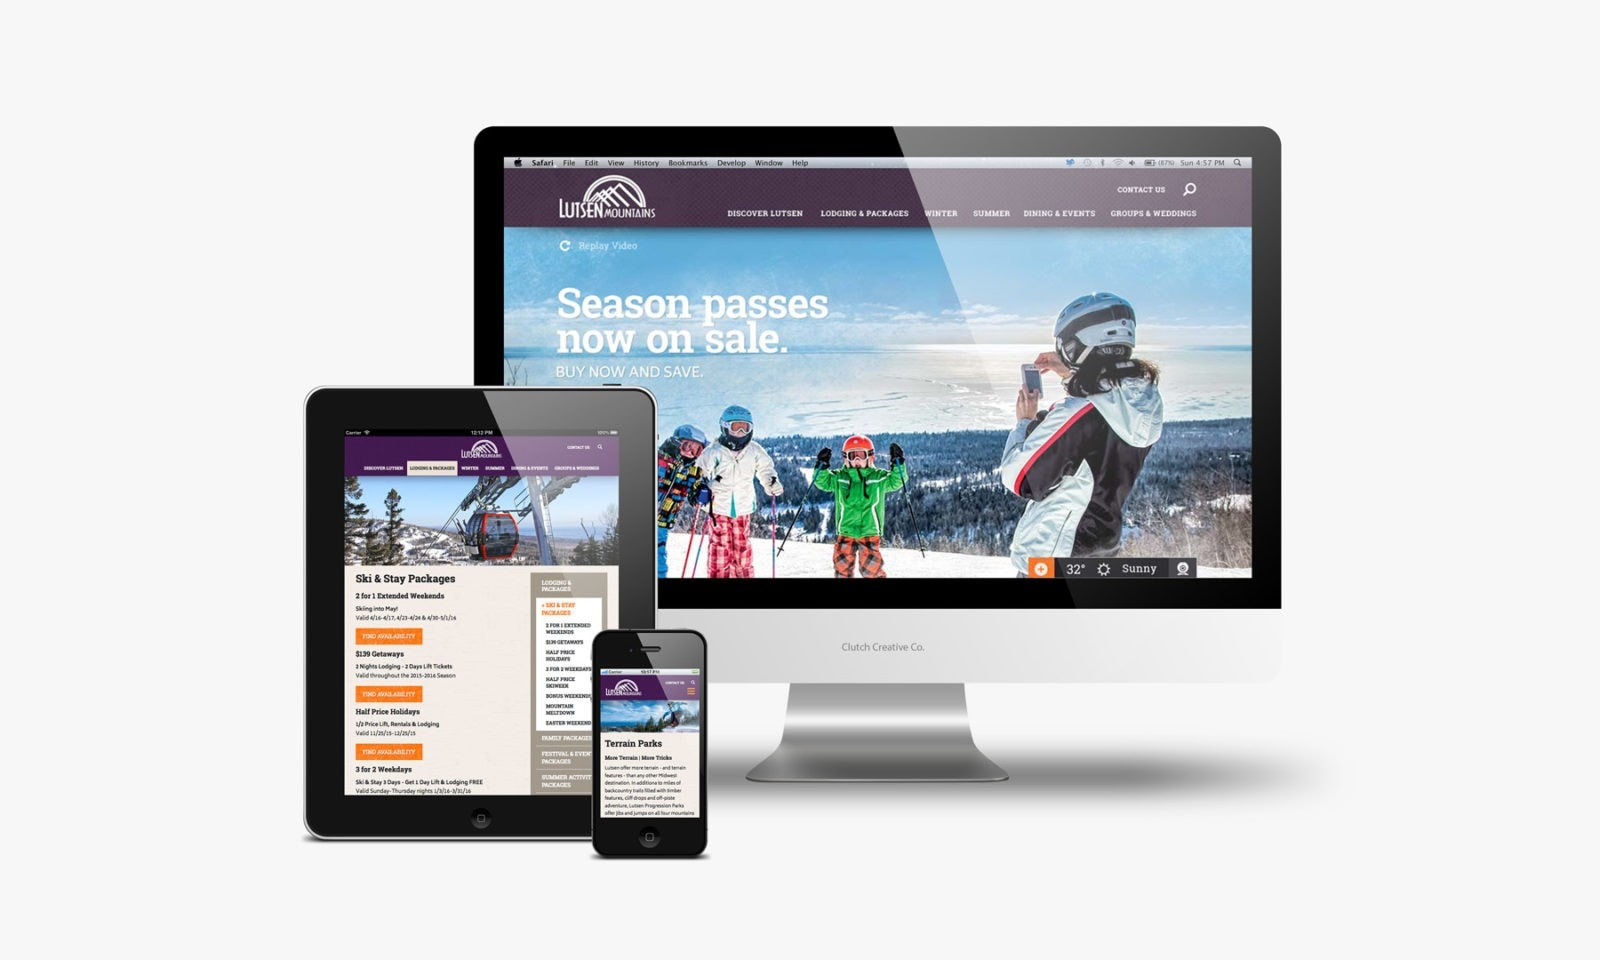 Ski resort website design example responsive website design. Clutch Creative Co. Burlington, VT resort website design.